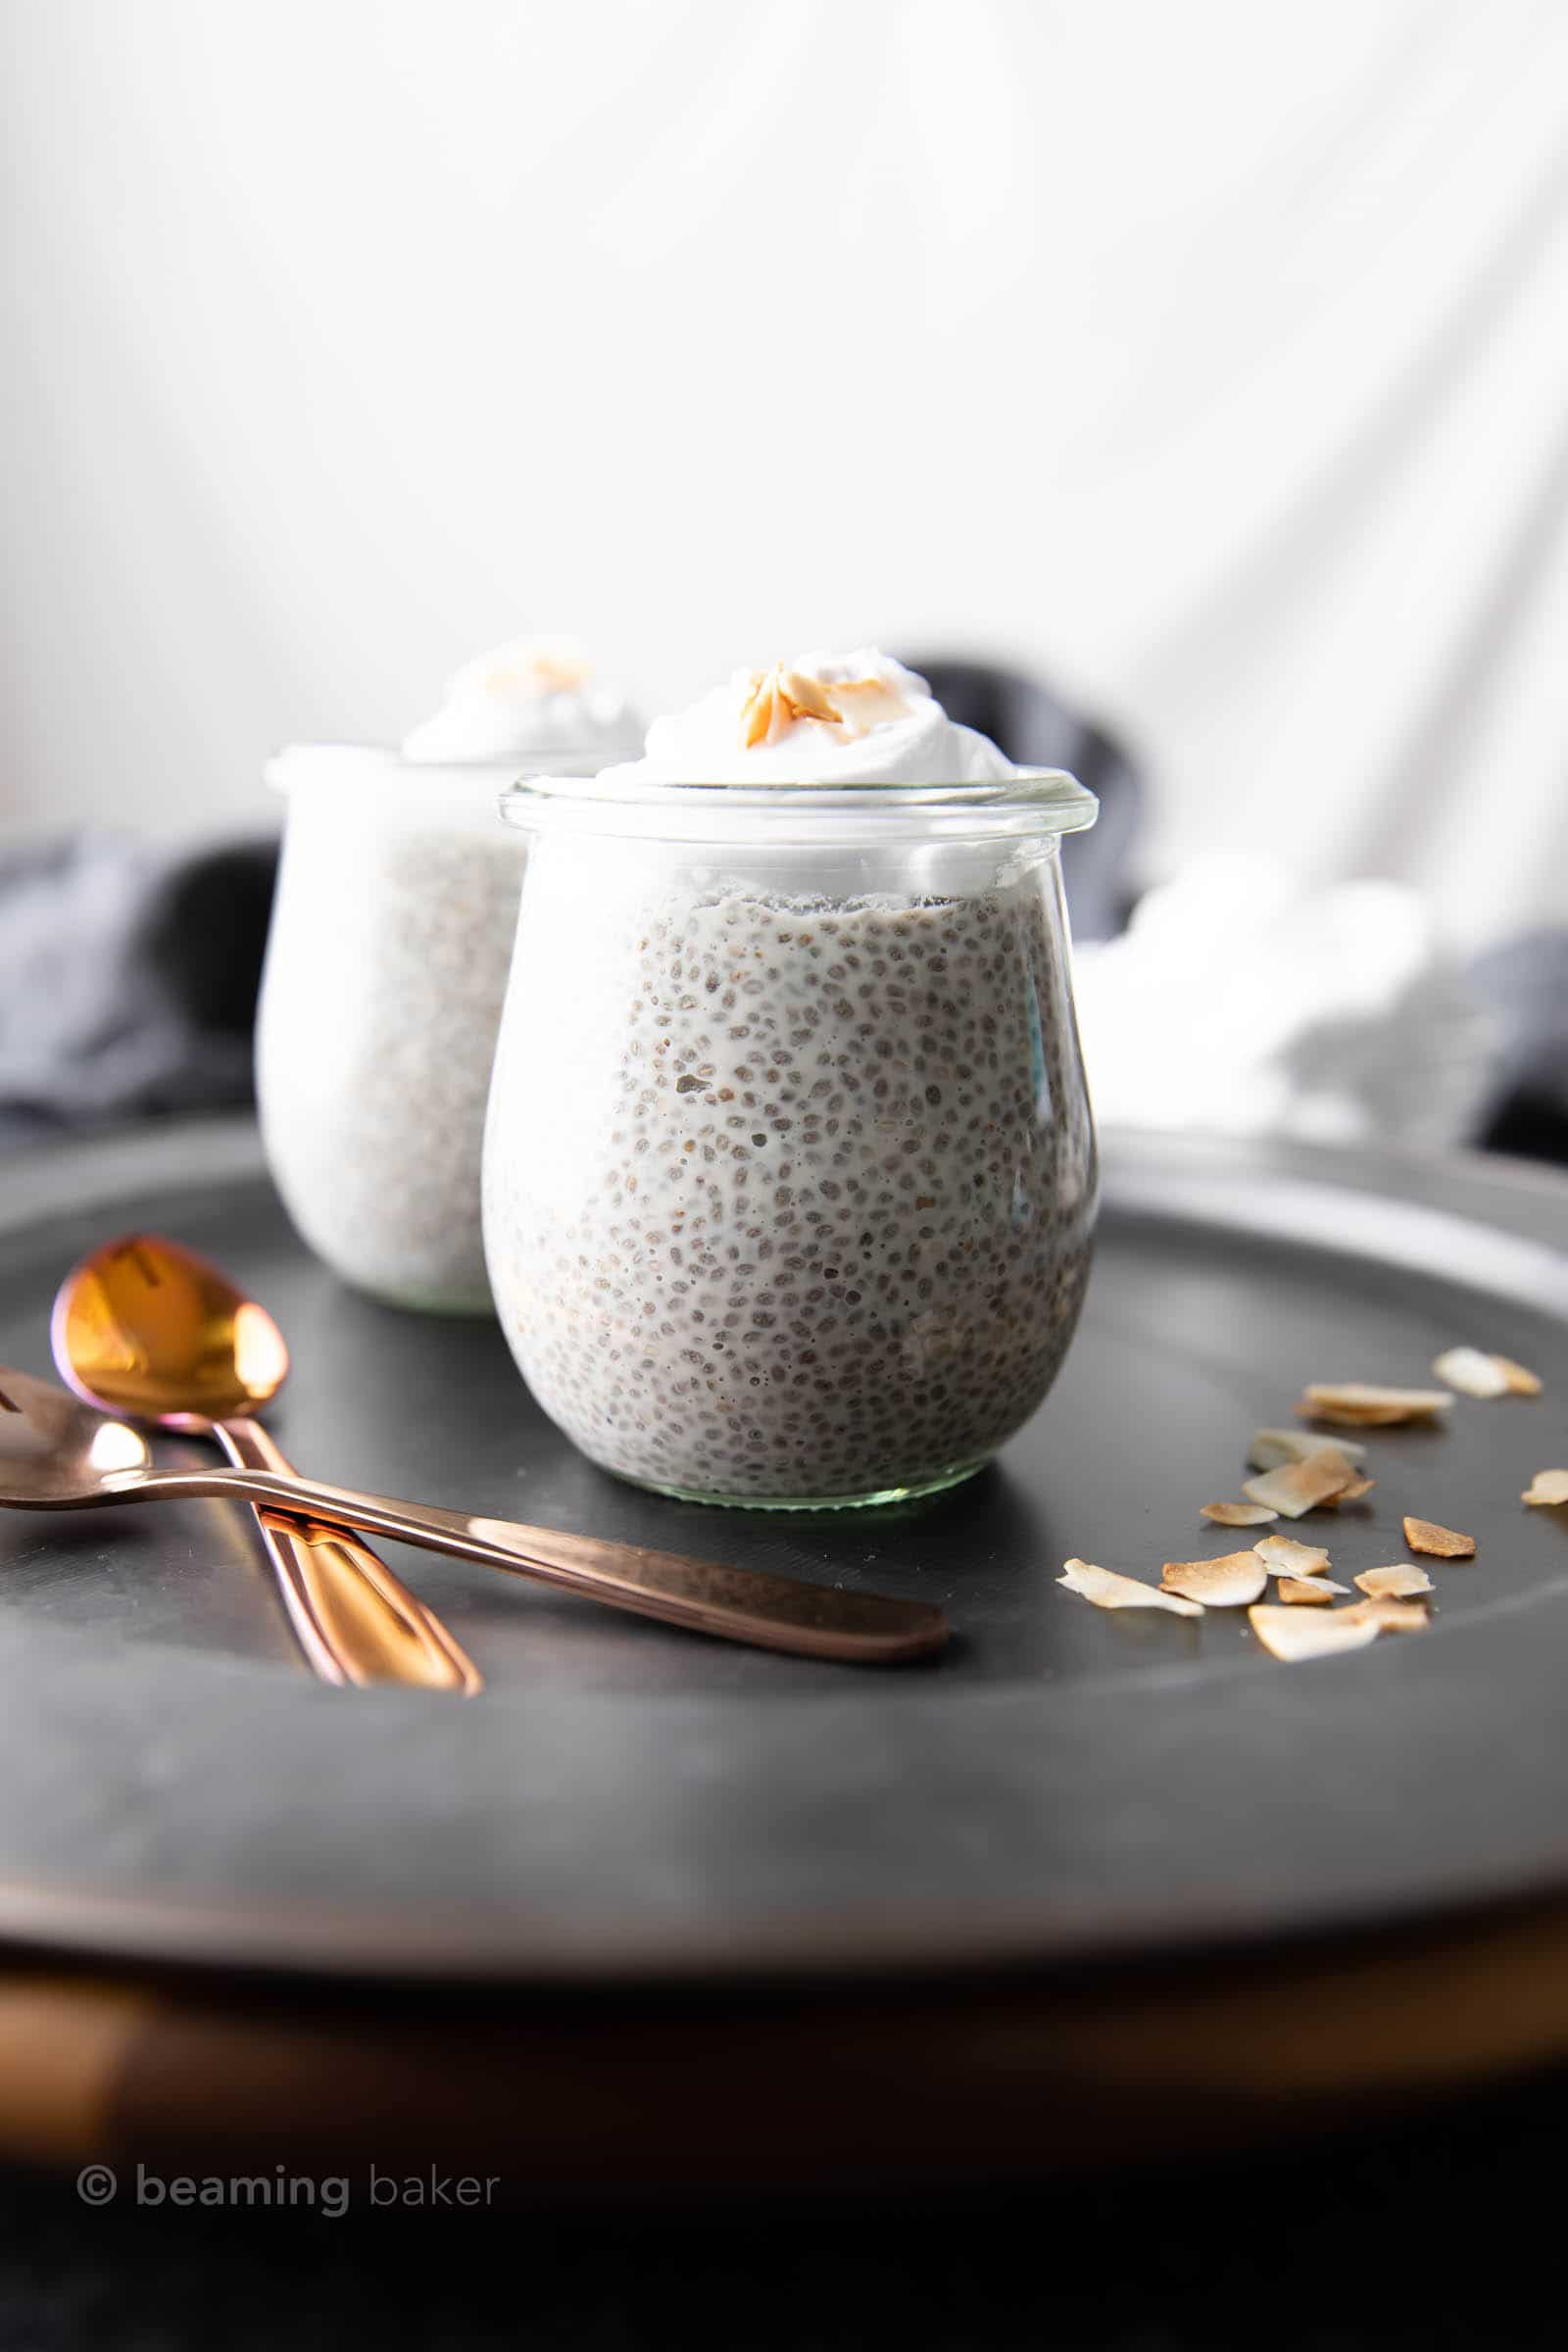 Coconut Chia Pudding Recipe: this chia pudding recipe is thick & creamy, with luscious texture and sweet coconut flavor. 5 ingredient, Vegan, Healthy, Dairy-Free, GF! #ChiaPudding #Vegan #Dessert #Coconut | Recipe at BeamingBaker.com